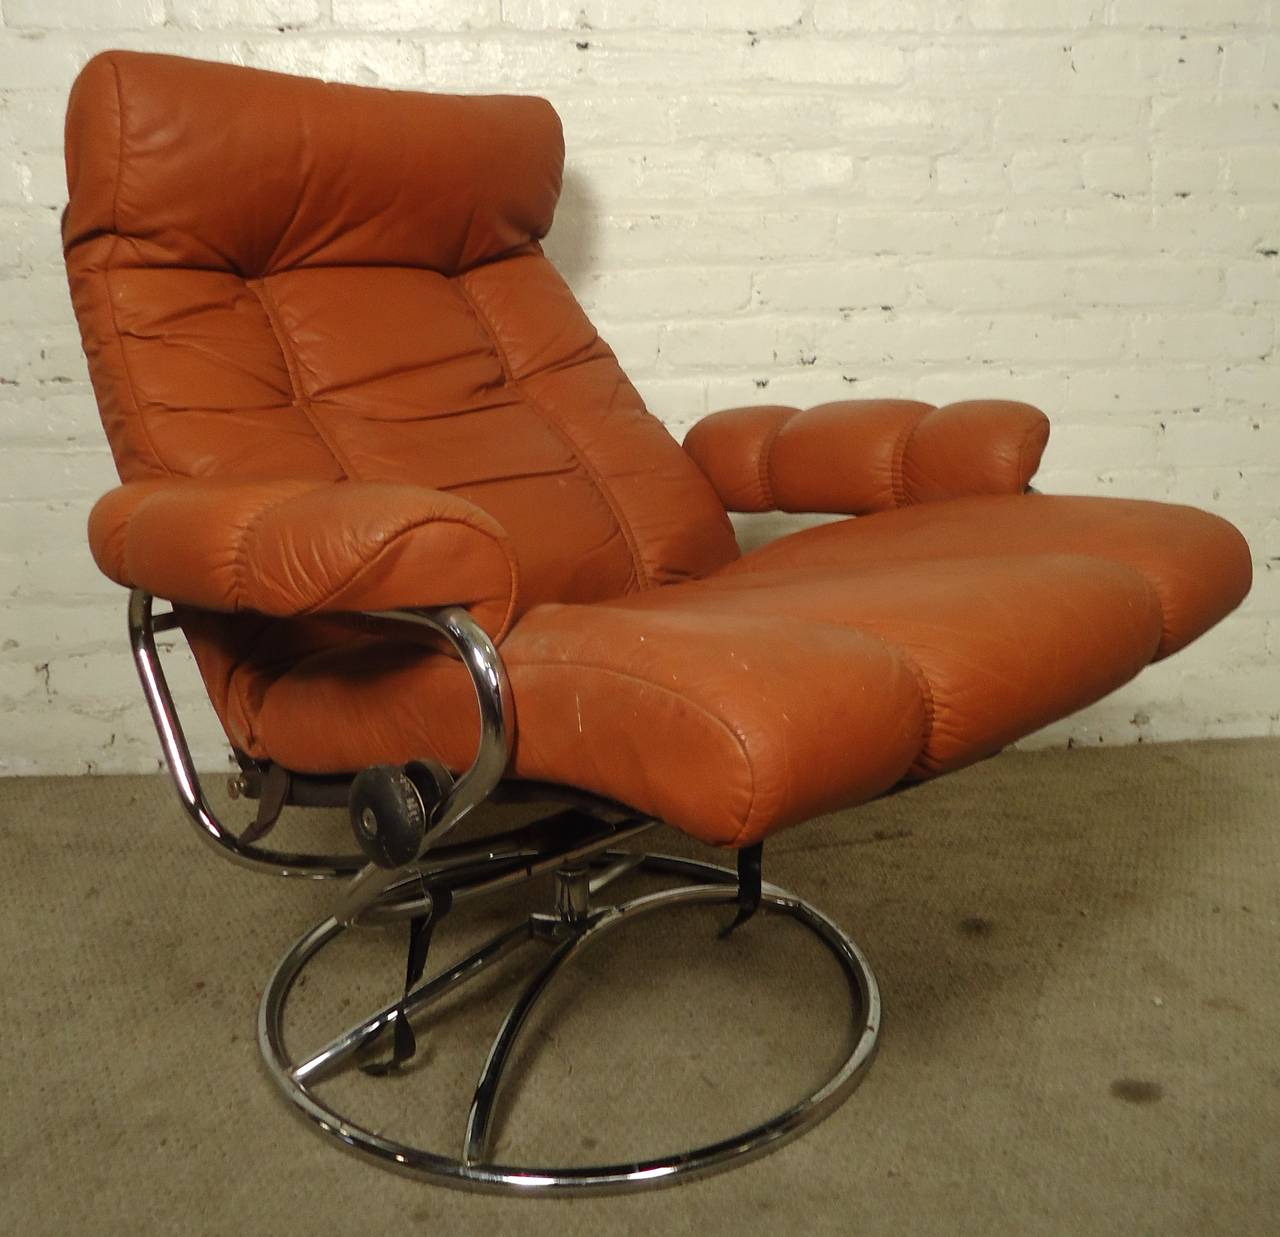 Mid-Century Reclining Chair and Ottoman by Ekornes Stressless 3 & Mid-Century Reclining Chair and Ottoman by Ekornes Stressless For ... islam-shia.org